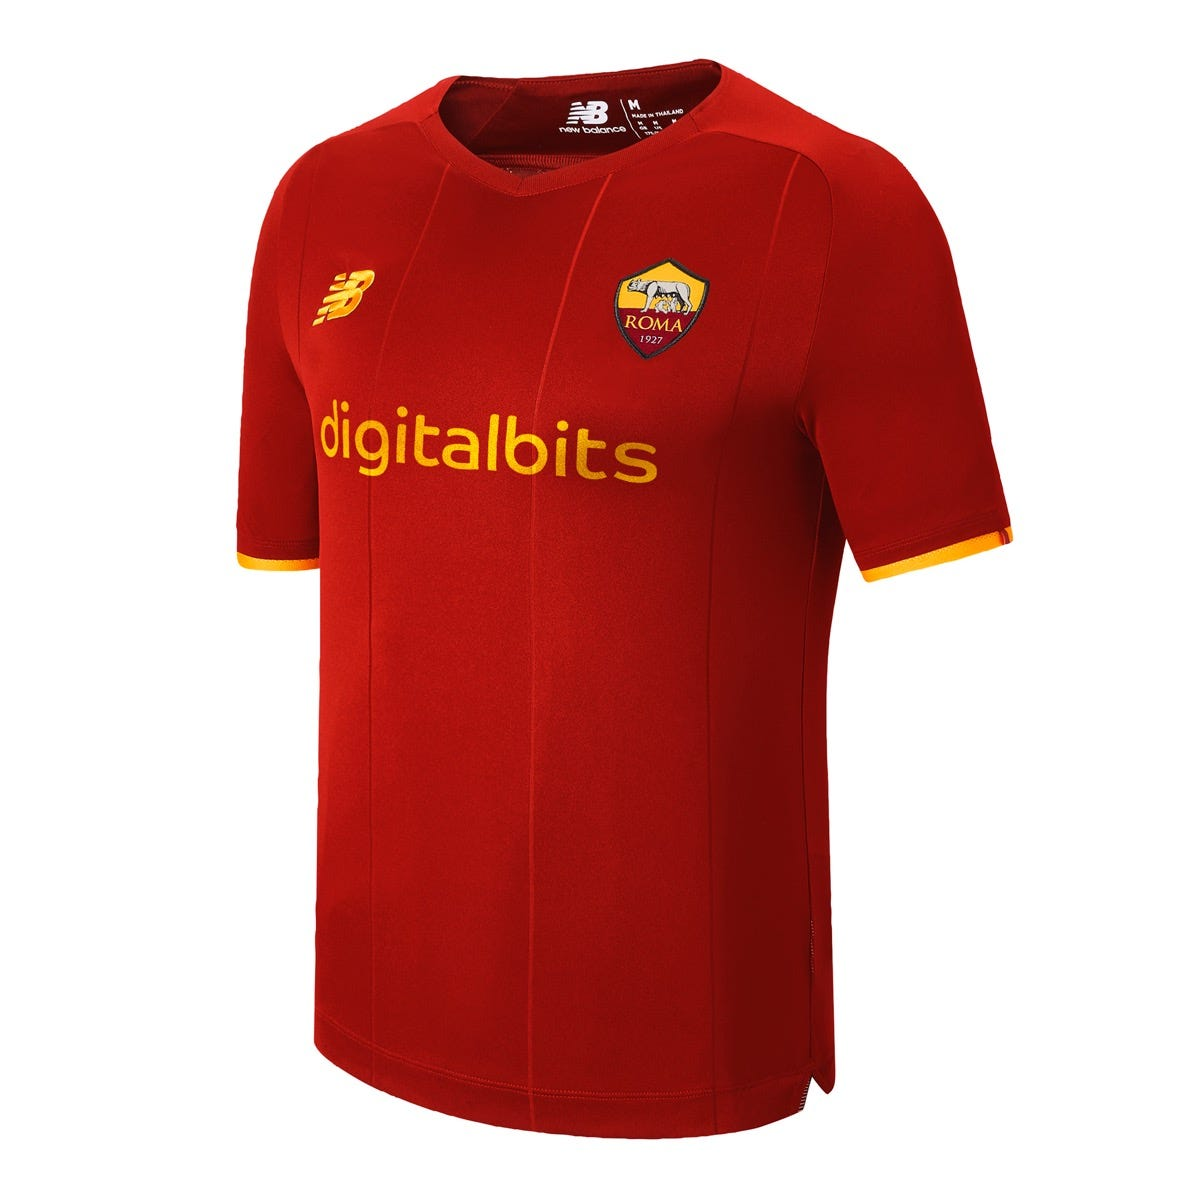 AS Roma Home Jersey Shirt, Men, 2021/22 w/t free Face Mask